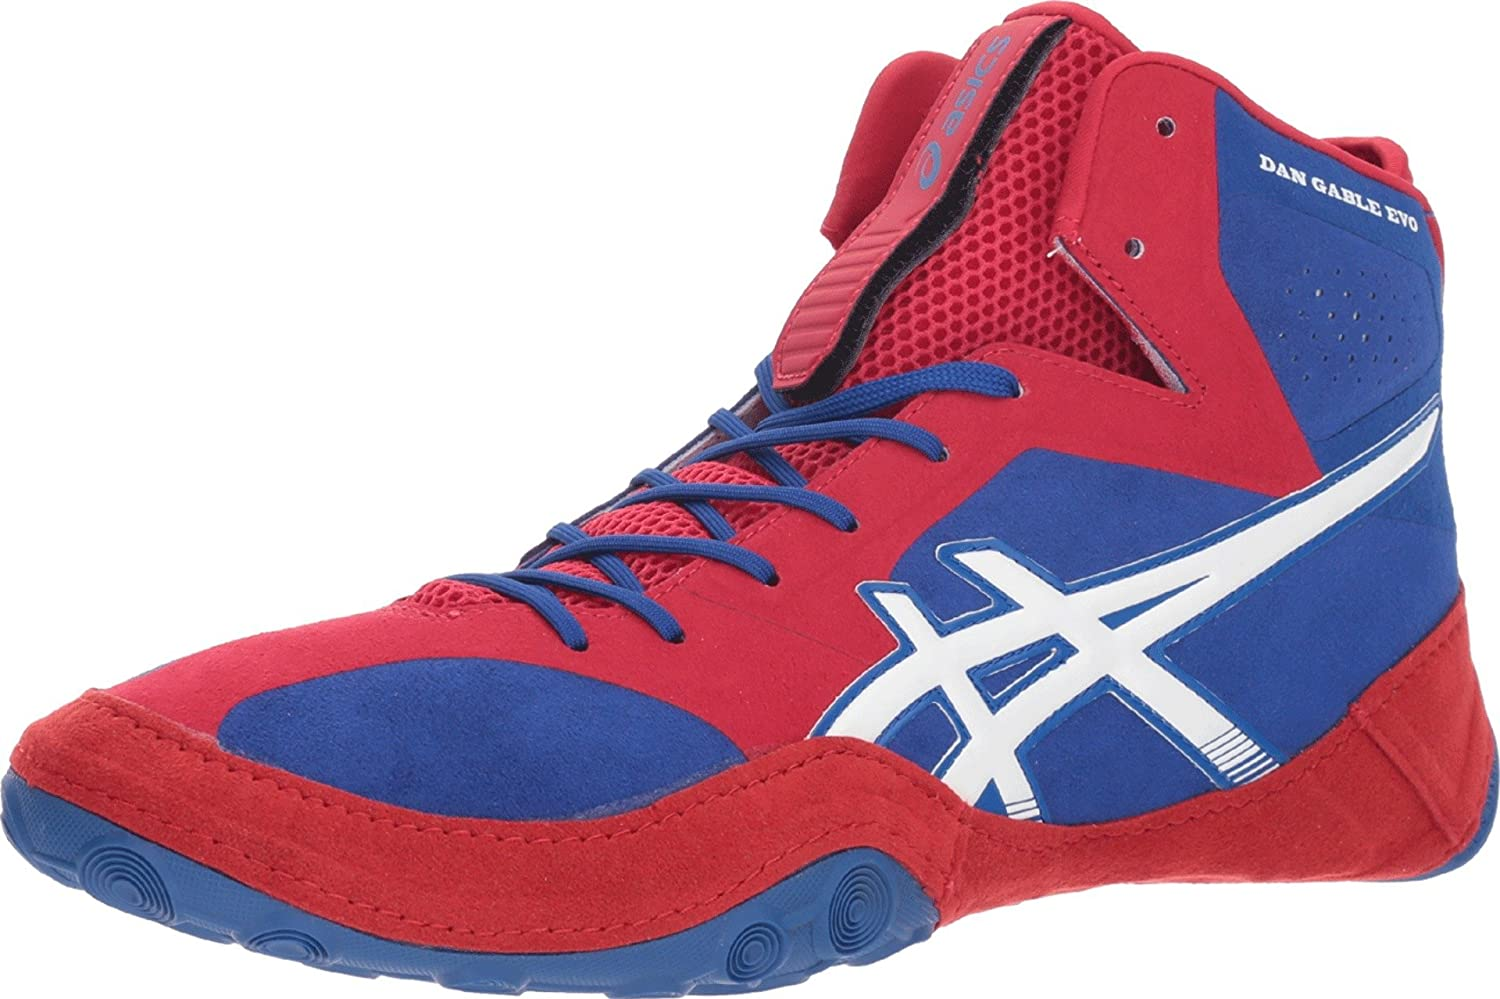 ASICS Men's Dan Gable Evo Wrestling Shoes, 11.5M, ASICS Blue/White